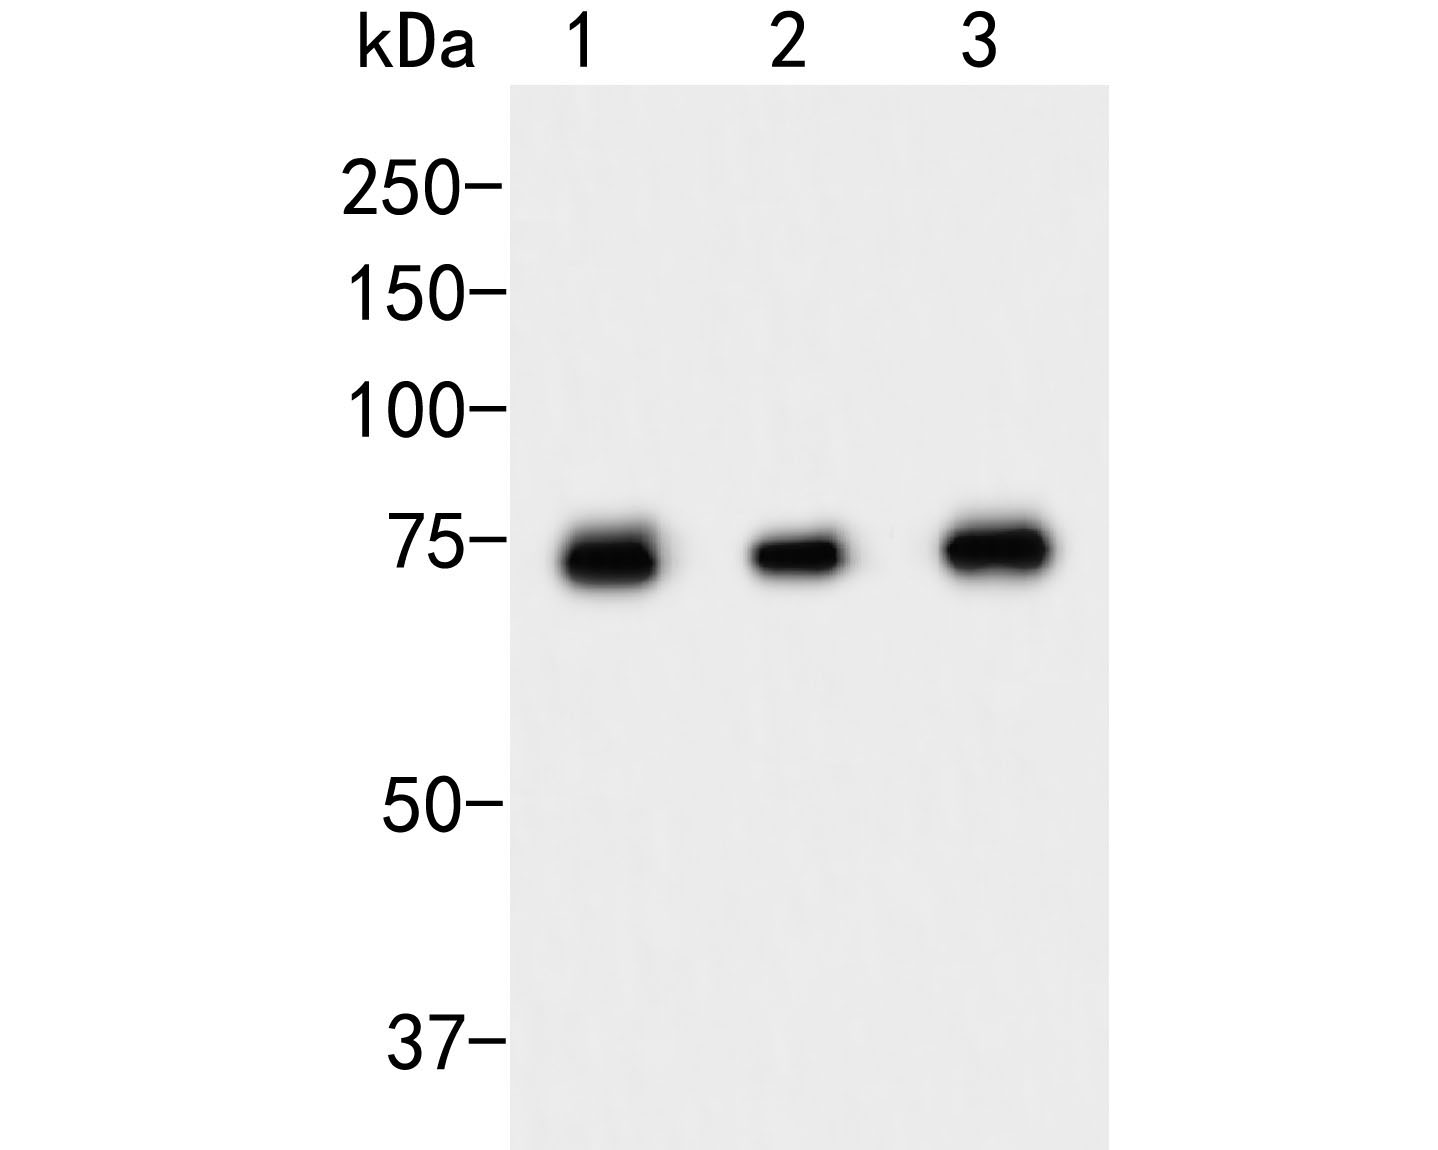 Western blot analysis of Apg7 on different lysates. Proteins were transferred to a PVDF membrane and blocked with 5% BSA in PBS for 1 hour at room temperature. The primary antibody (ET1610-53, 1/500) was used in 5% BSA at room temperature for 2 hours. Goat Anti-Rabbit IgG - HRP Secondary Antibody (HA1001) at 1:5,000 dilution was used for 1 hour at room temperature.<br />  Positive control: <br />  Lane 1: HepG2 cell lysates<br />  Lane 2: Jurkat cell lysates<br />  Lane 3: 293T cell lysates